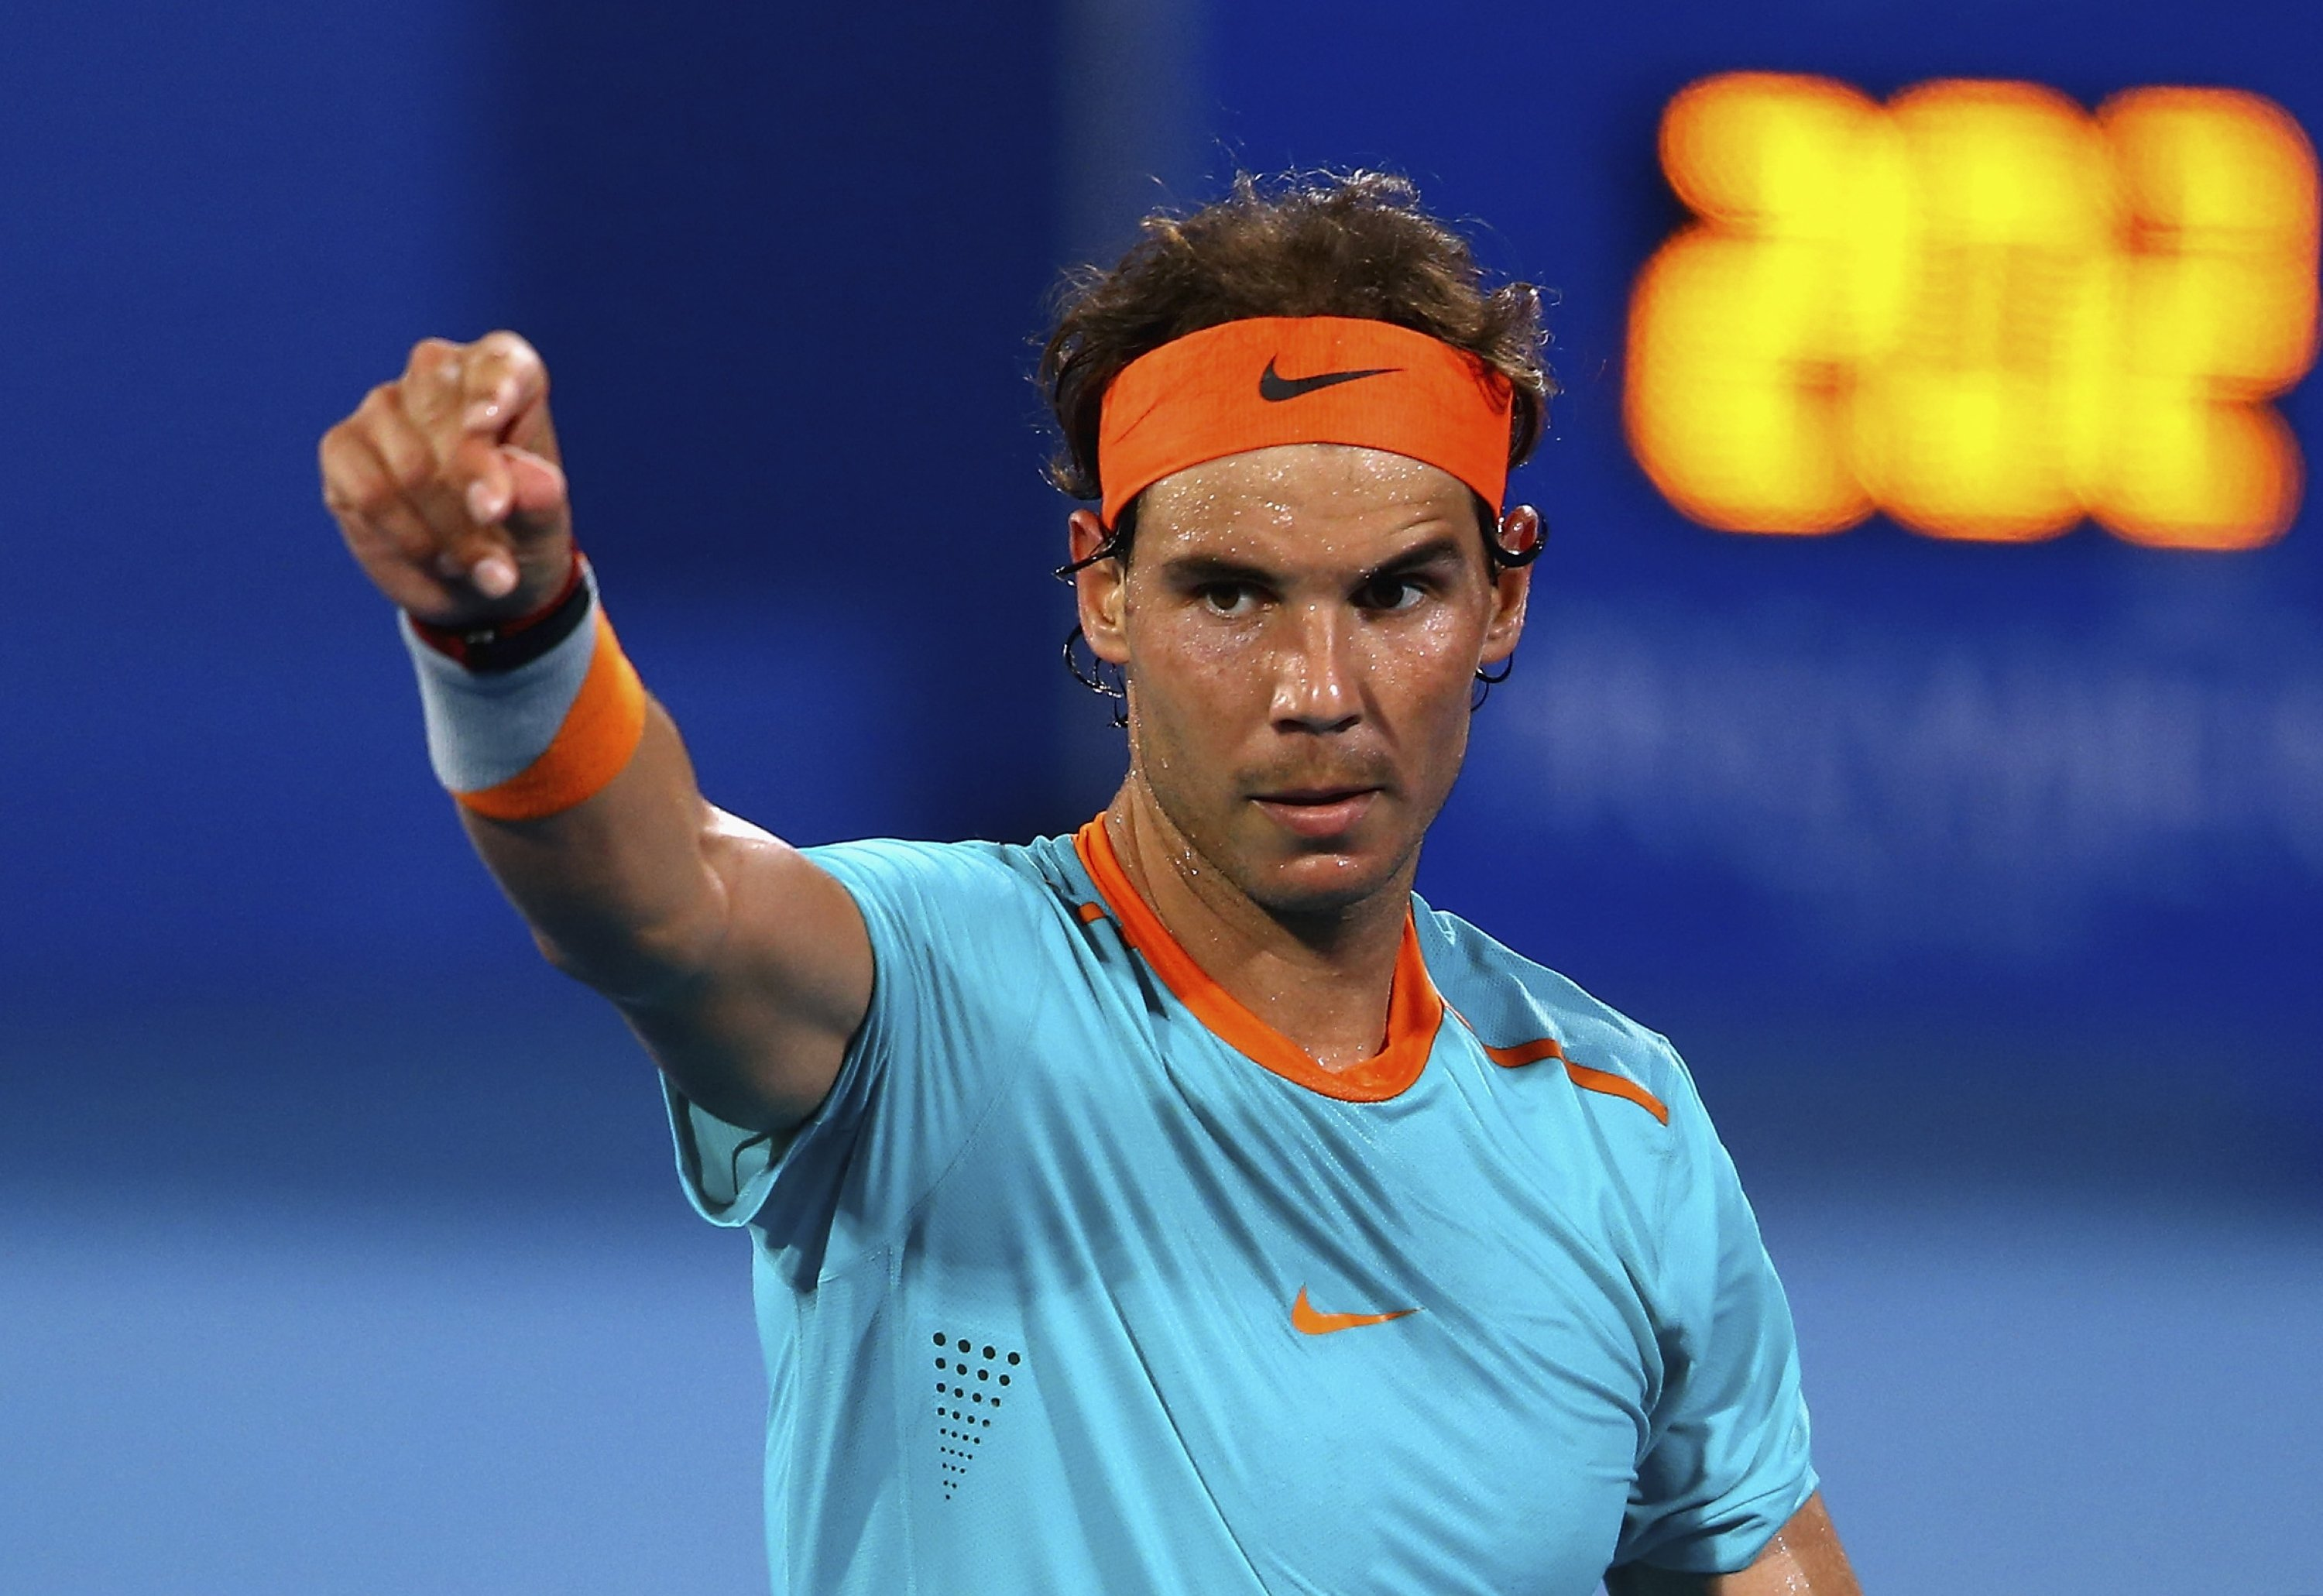 rafael nadal Rafael nadal on tmz, your go-to source for celebrity news, photos, & videos latest story: cristiano ronaldo, lionel messi and spaniard rafael.